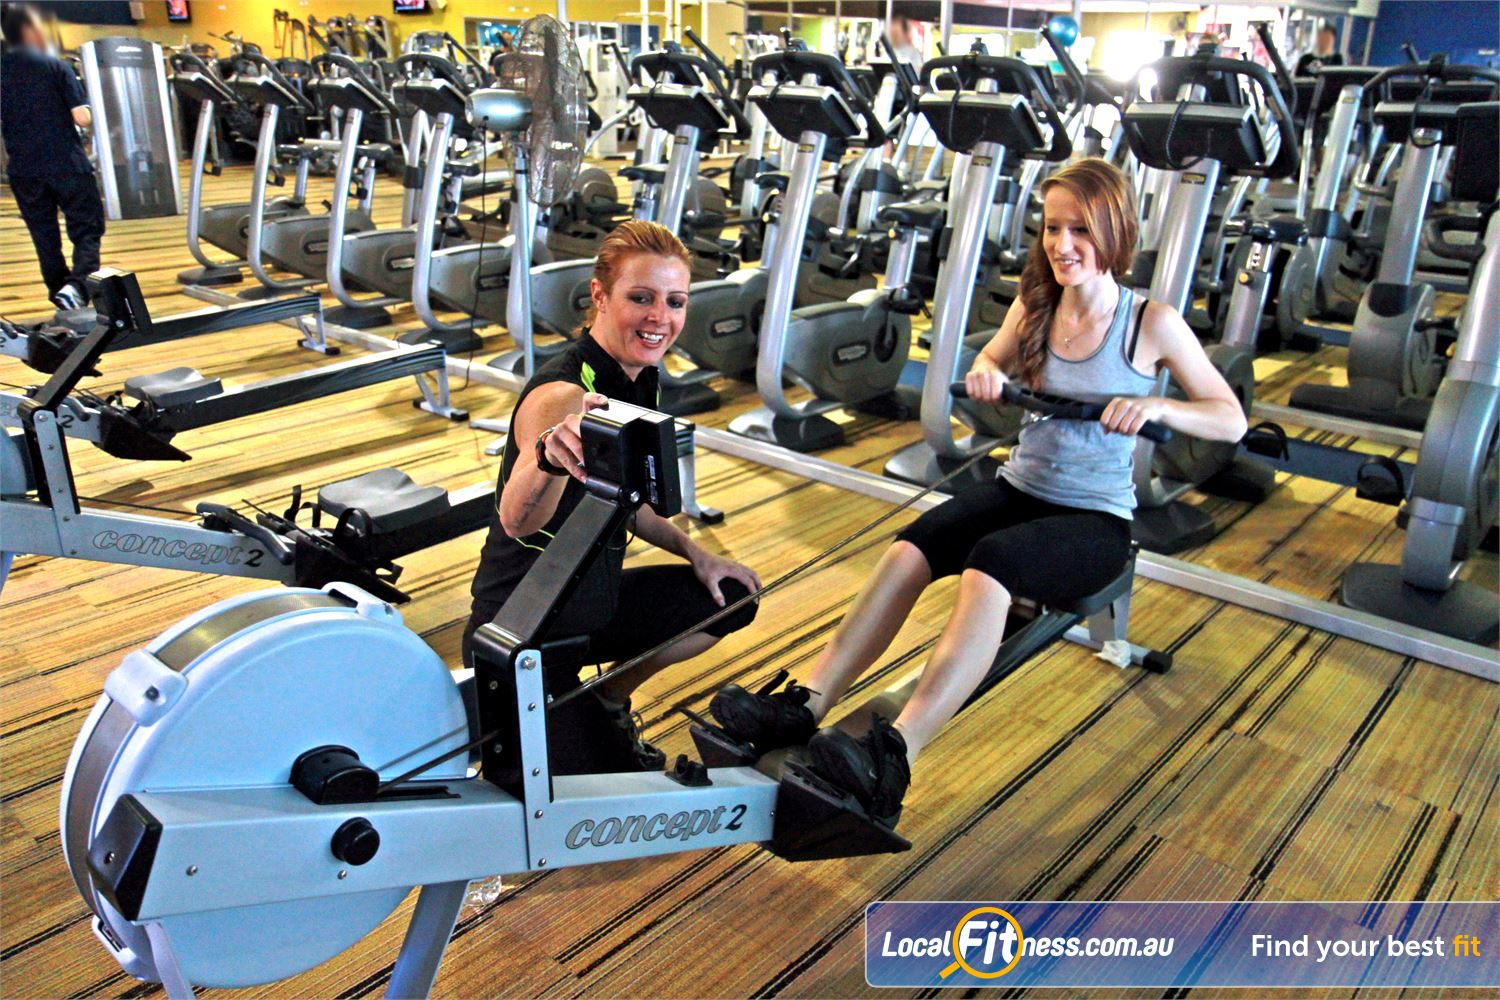 Goodlife Health Clubs Cannington Goodlife Cannington gym provides a range of cardio weapons: including indoor rowing.